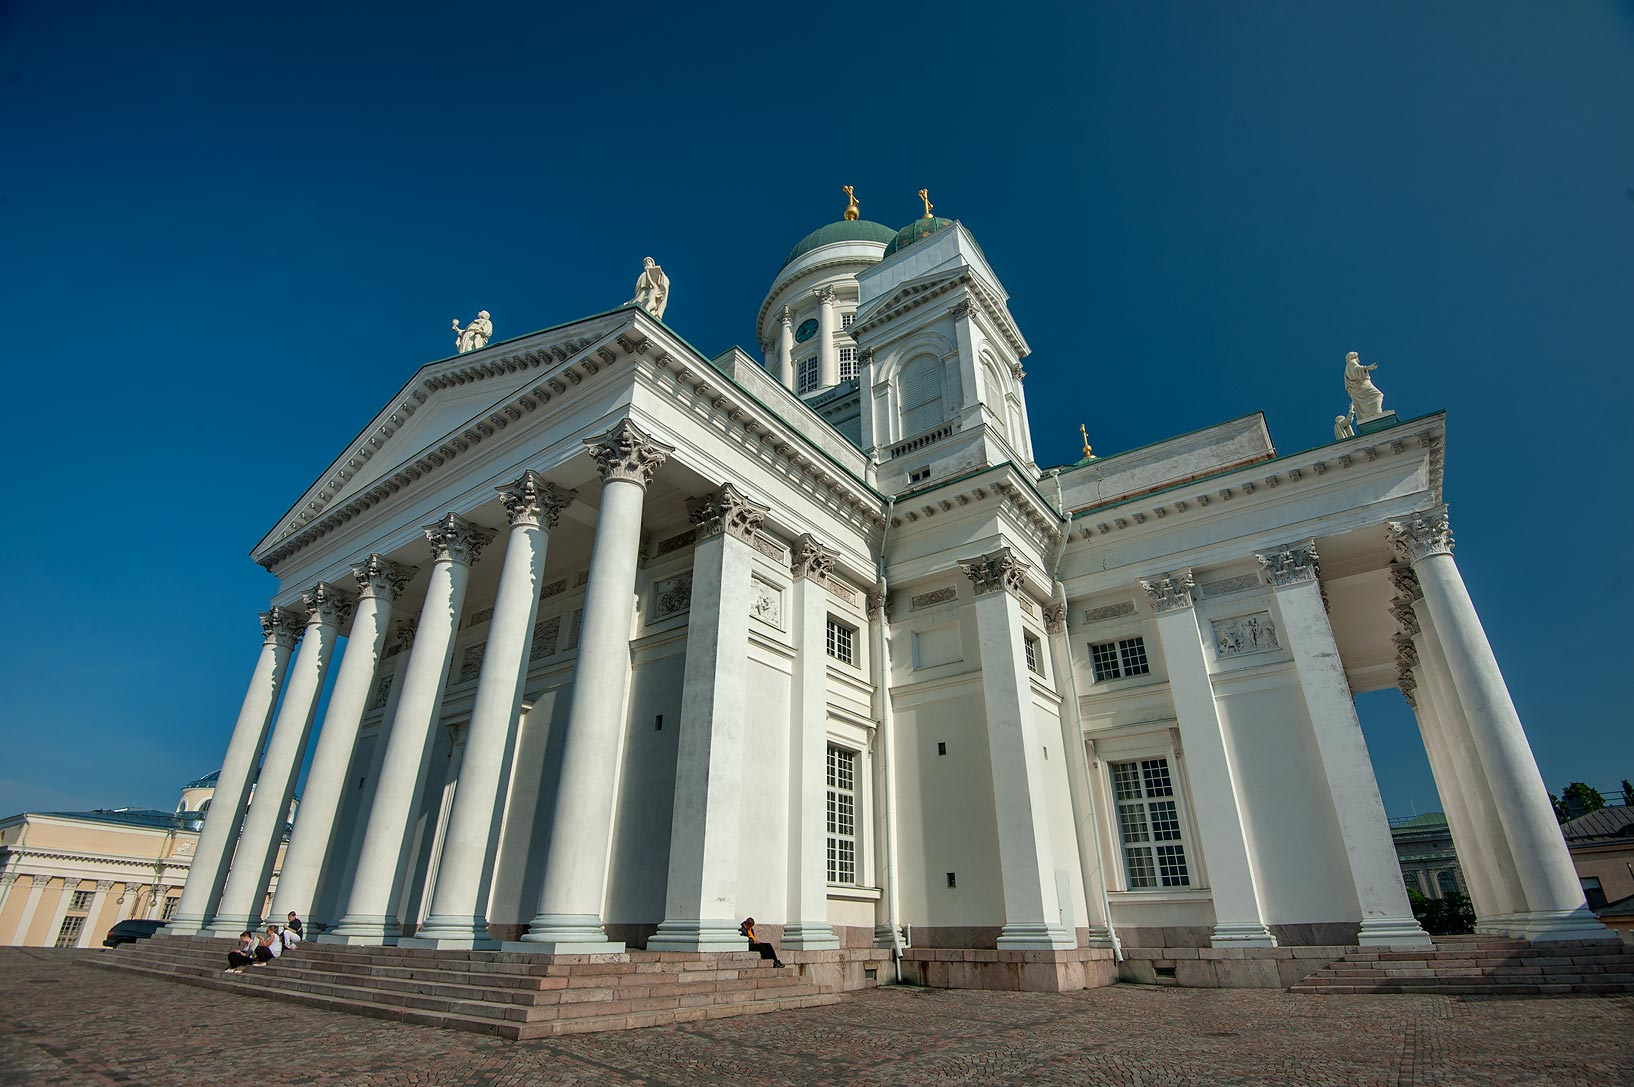 Helsinki Cathedral (St. Nicholas' Church) (1826) on Senate Square. Helsinki, Finland